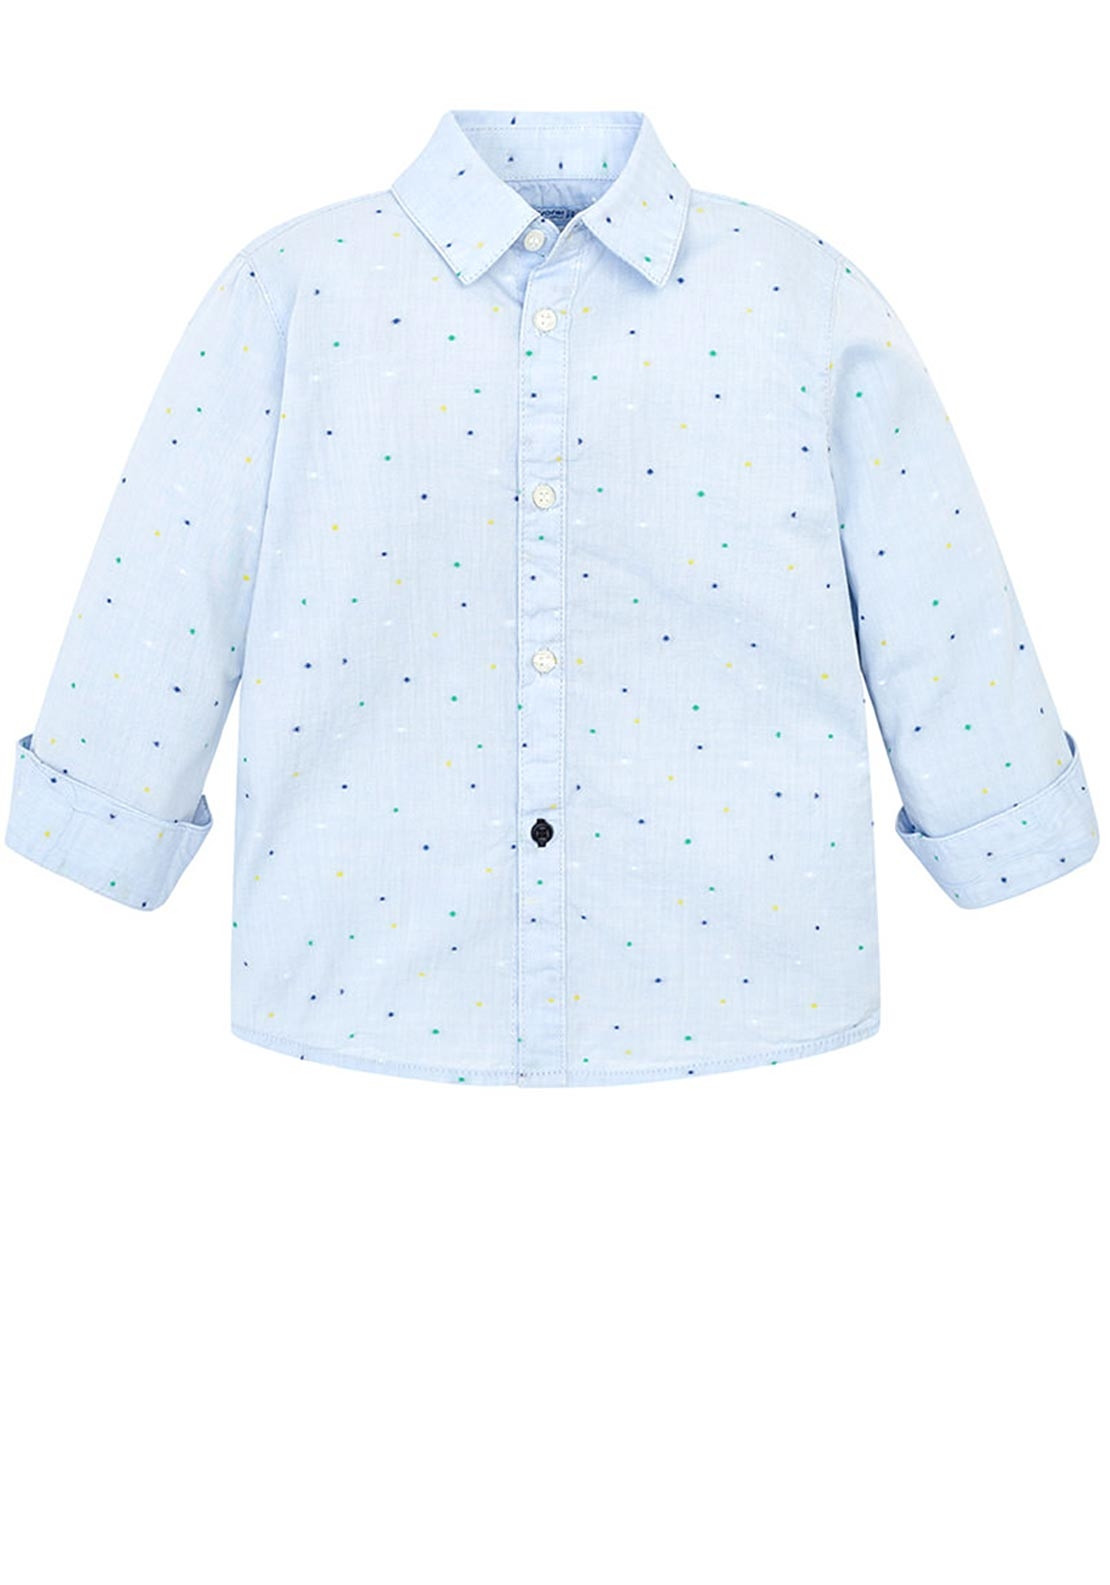 93fe76e4 Mayoral Boys Long Sleeve Dots Slim Fit Shirt, Blue | McElhinneys